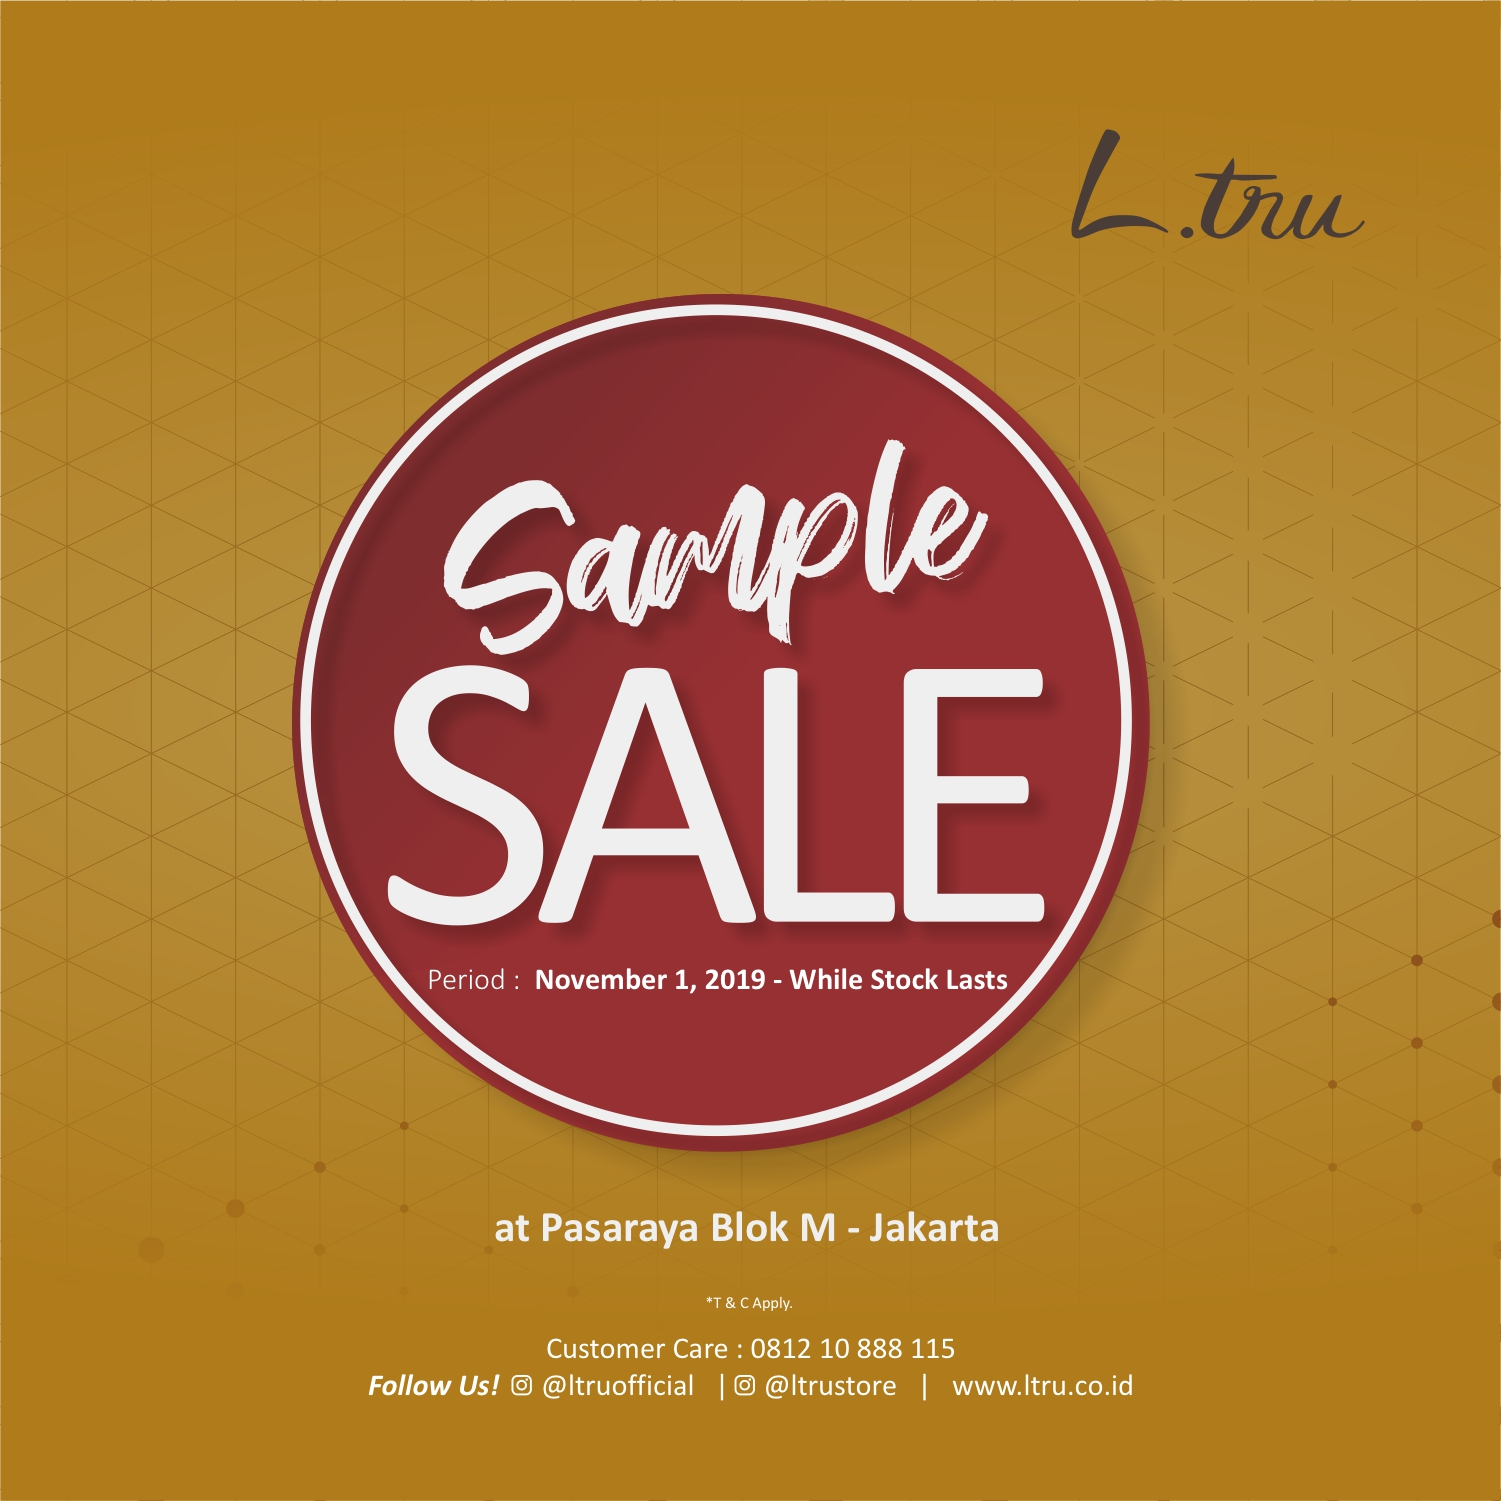 L.tru SAMPLE SALE NOVEMBER 2019 image